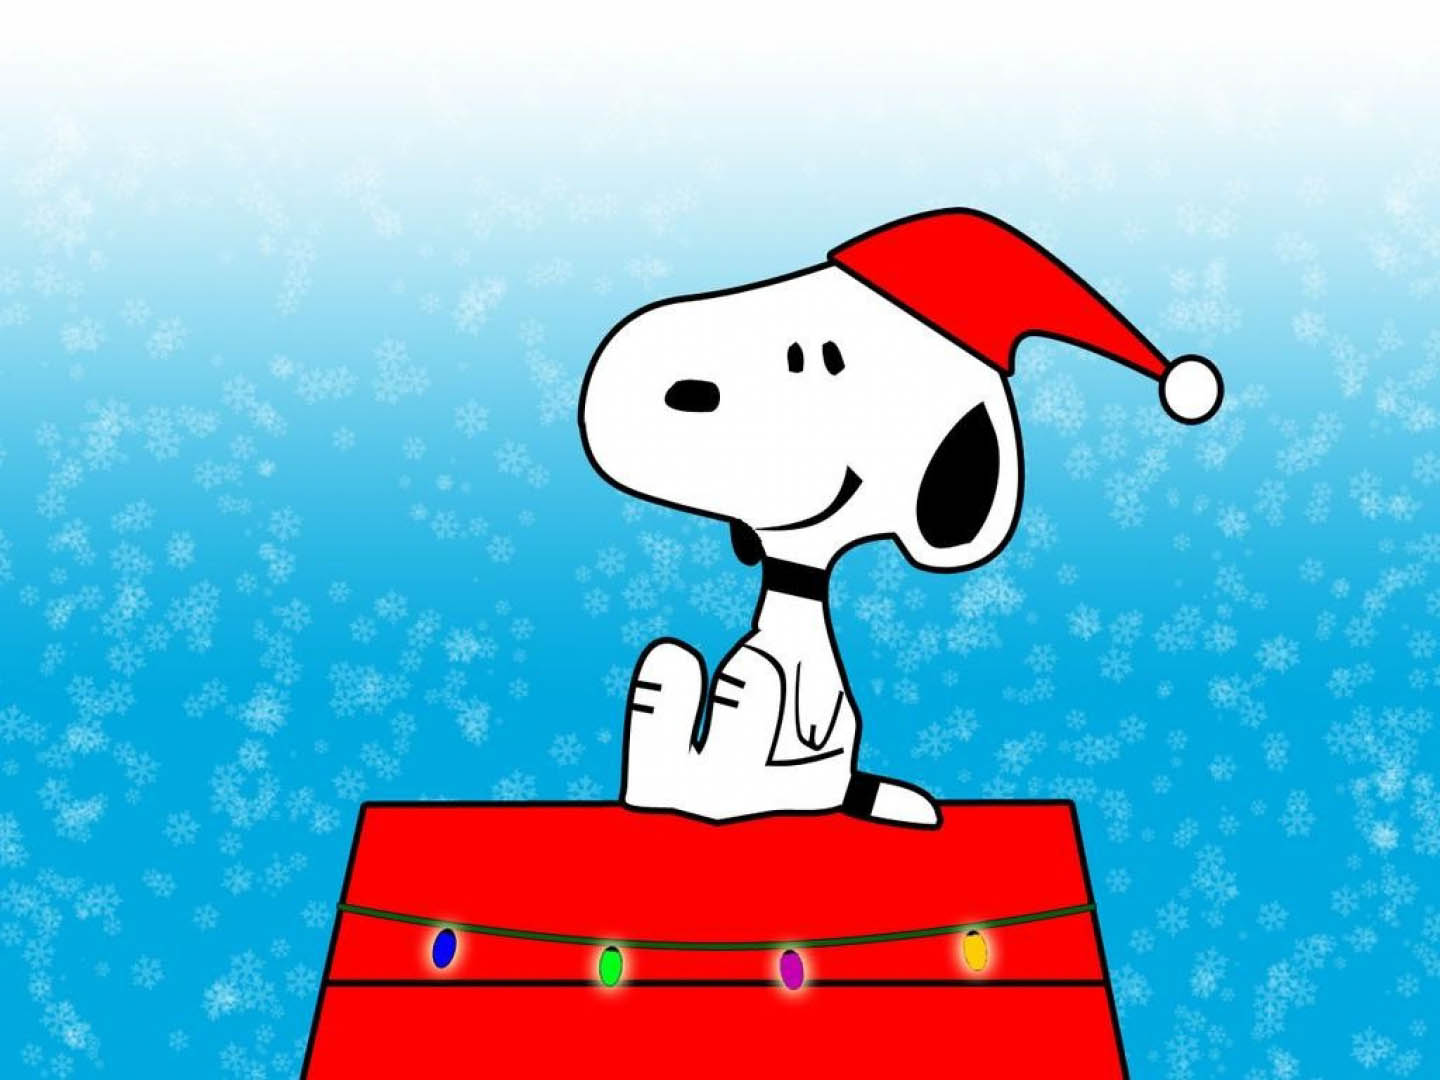 Peanuts Fall Iphone Wallpaper Snoopy High Definition Backgrounds And Wallpapers All Hd